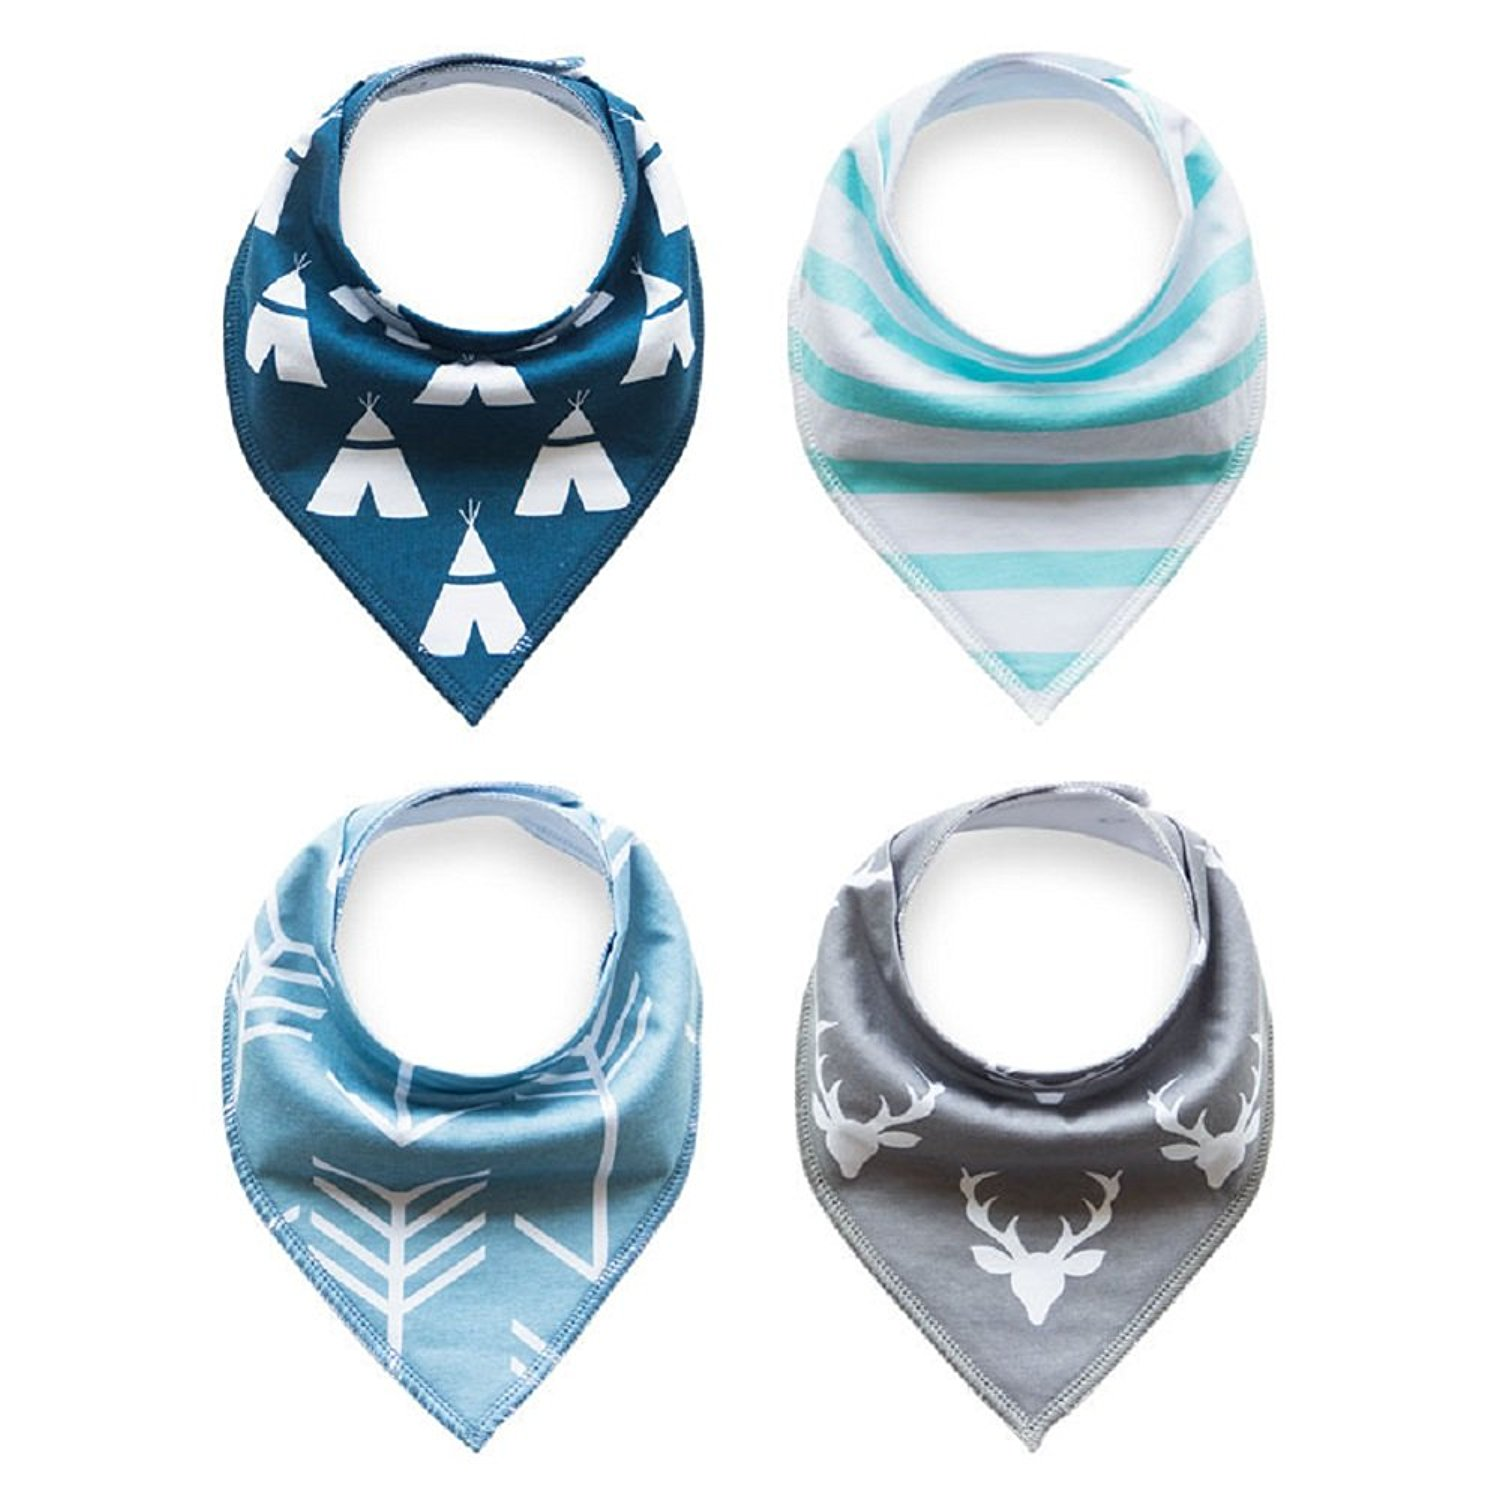 Baby Bandana Drool Bib Set Of 4Organic Super Absorbent Soft Chic Drooling And Teething Bibs B071G2GSQ3